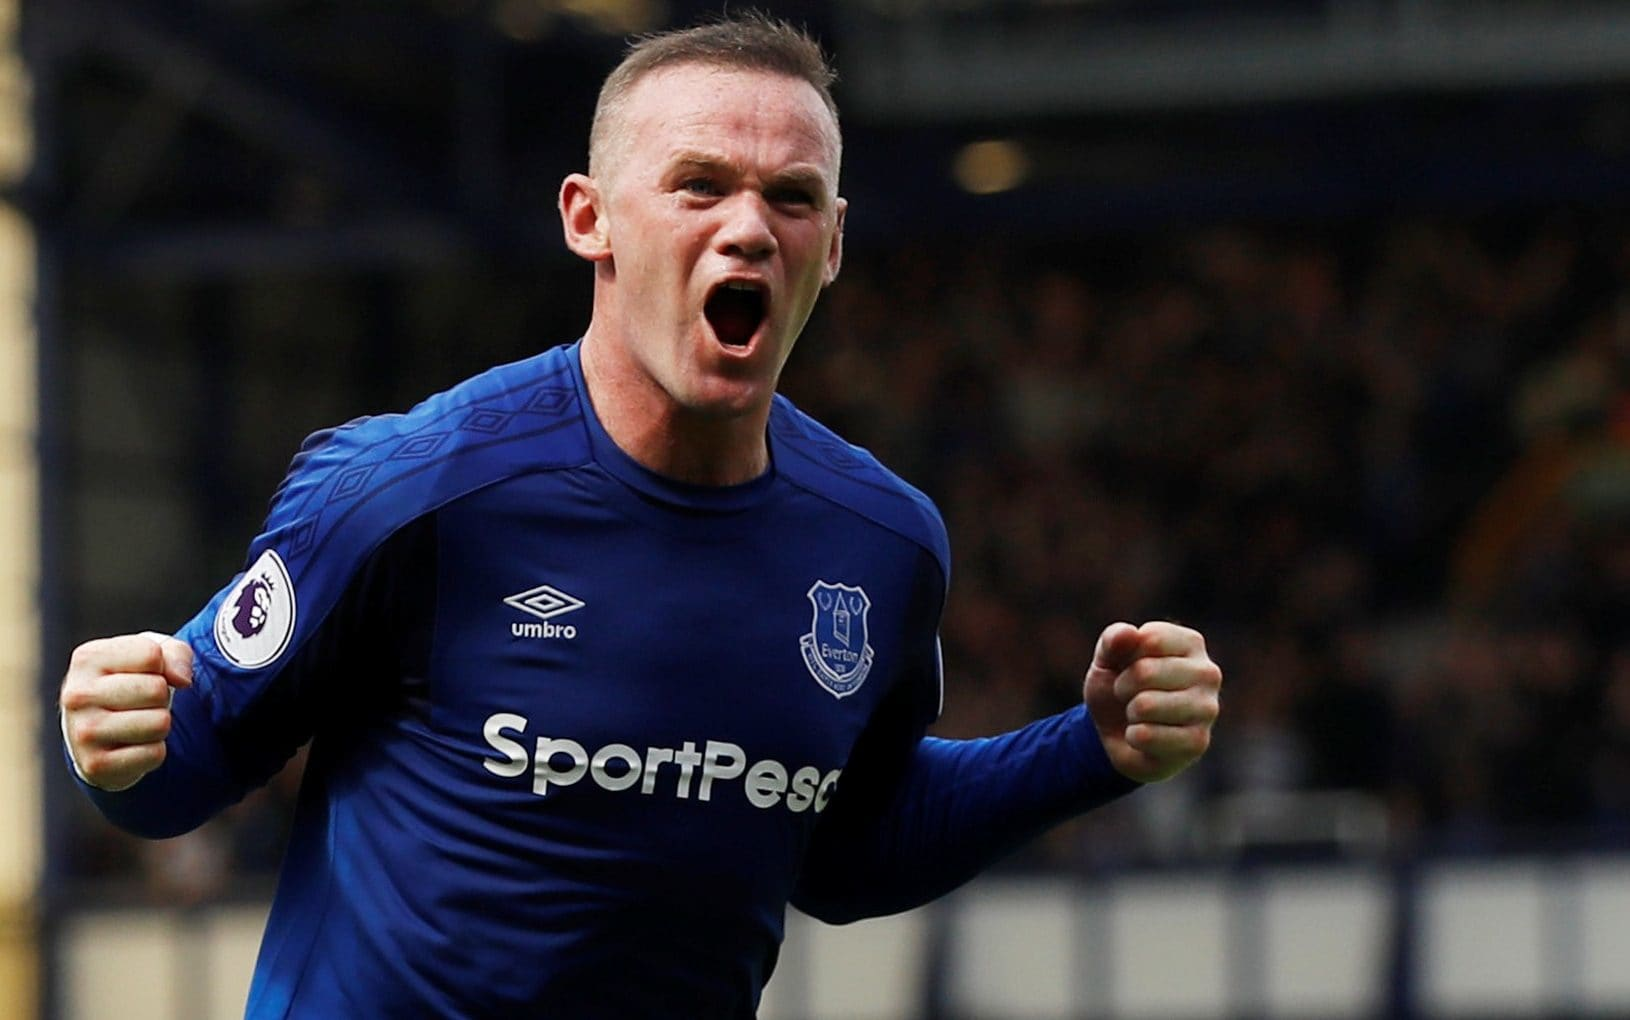 Everton 1- 0 Stoke : Wayne Rooney scores winner in his Everton return